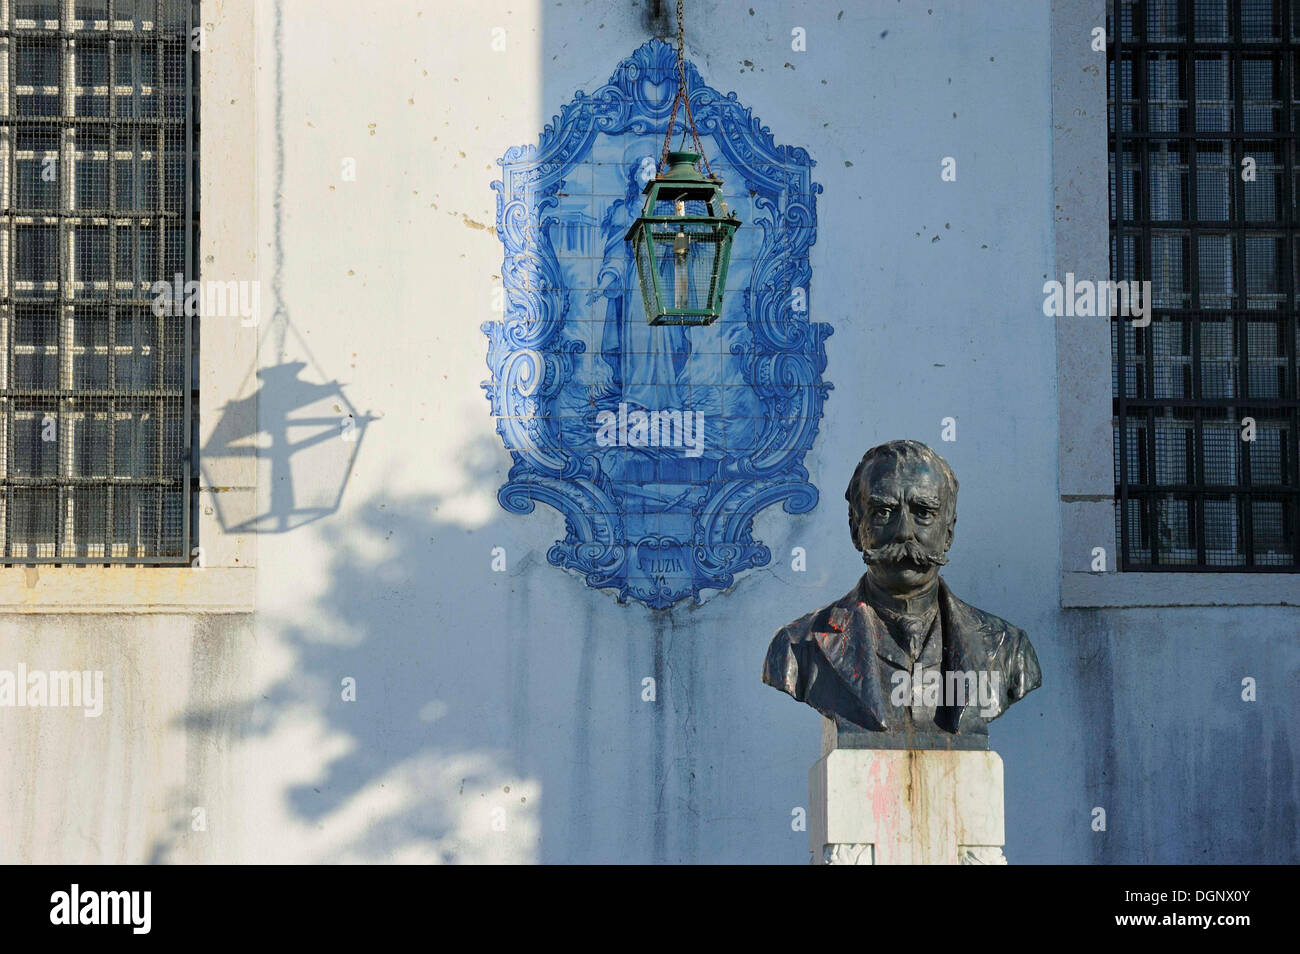 Monument to the historian Julio de Cas the younger, Julio de Cas filho, in front of the church Santa Luzia with an Azulejo tile - Stock Image